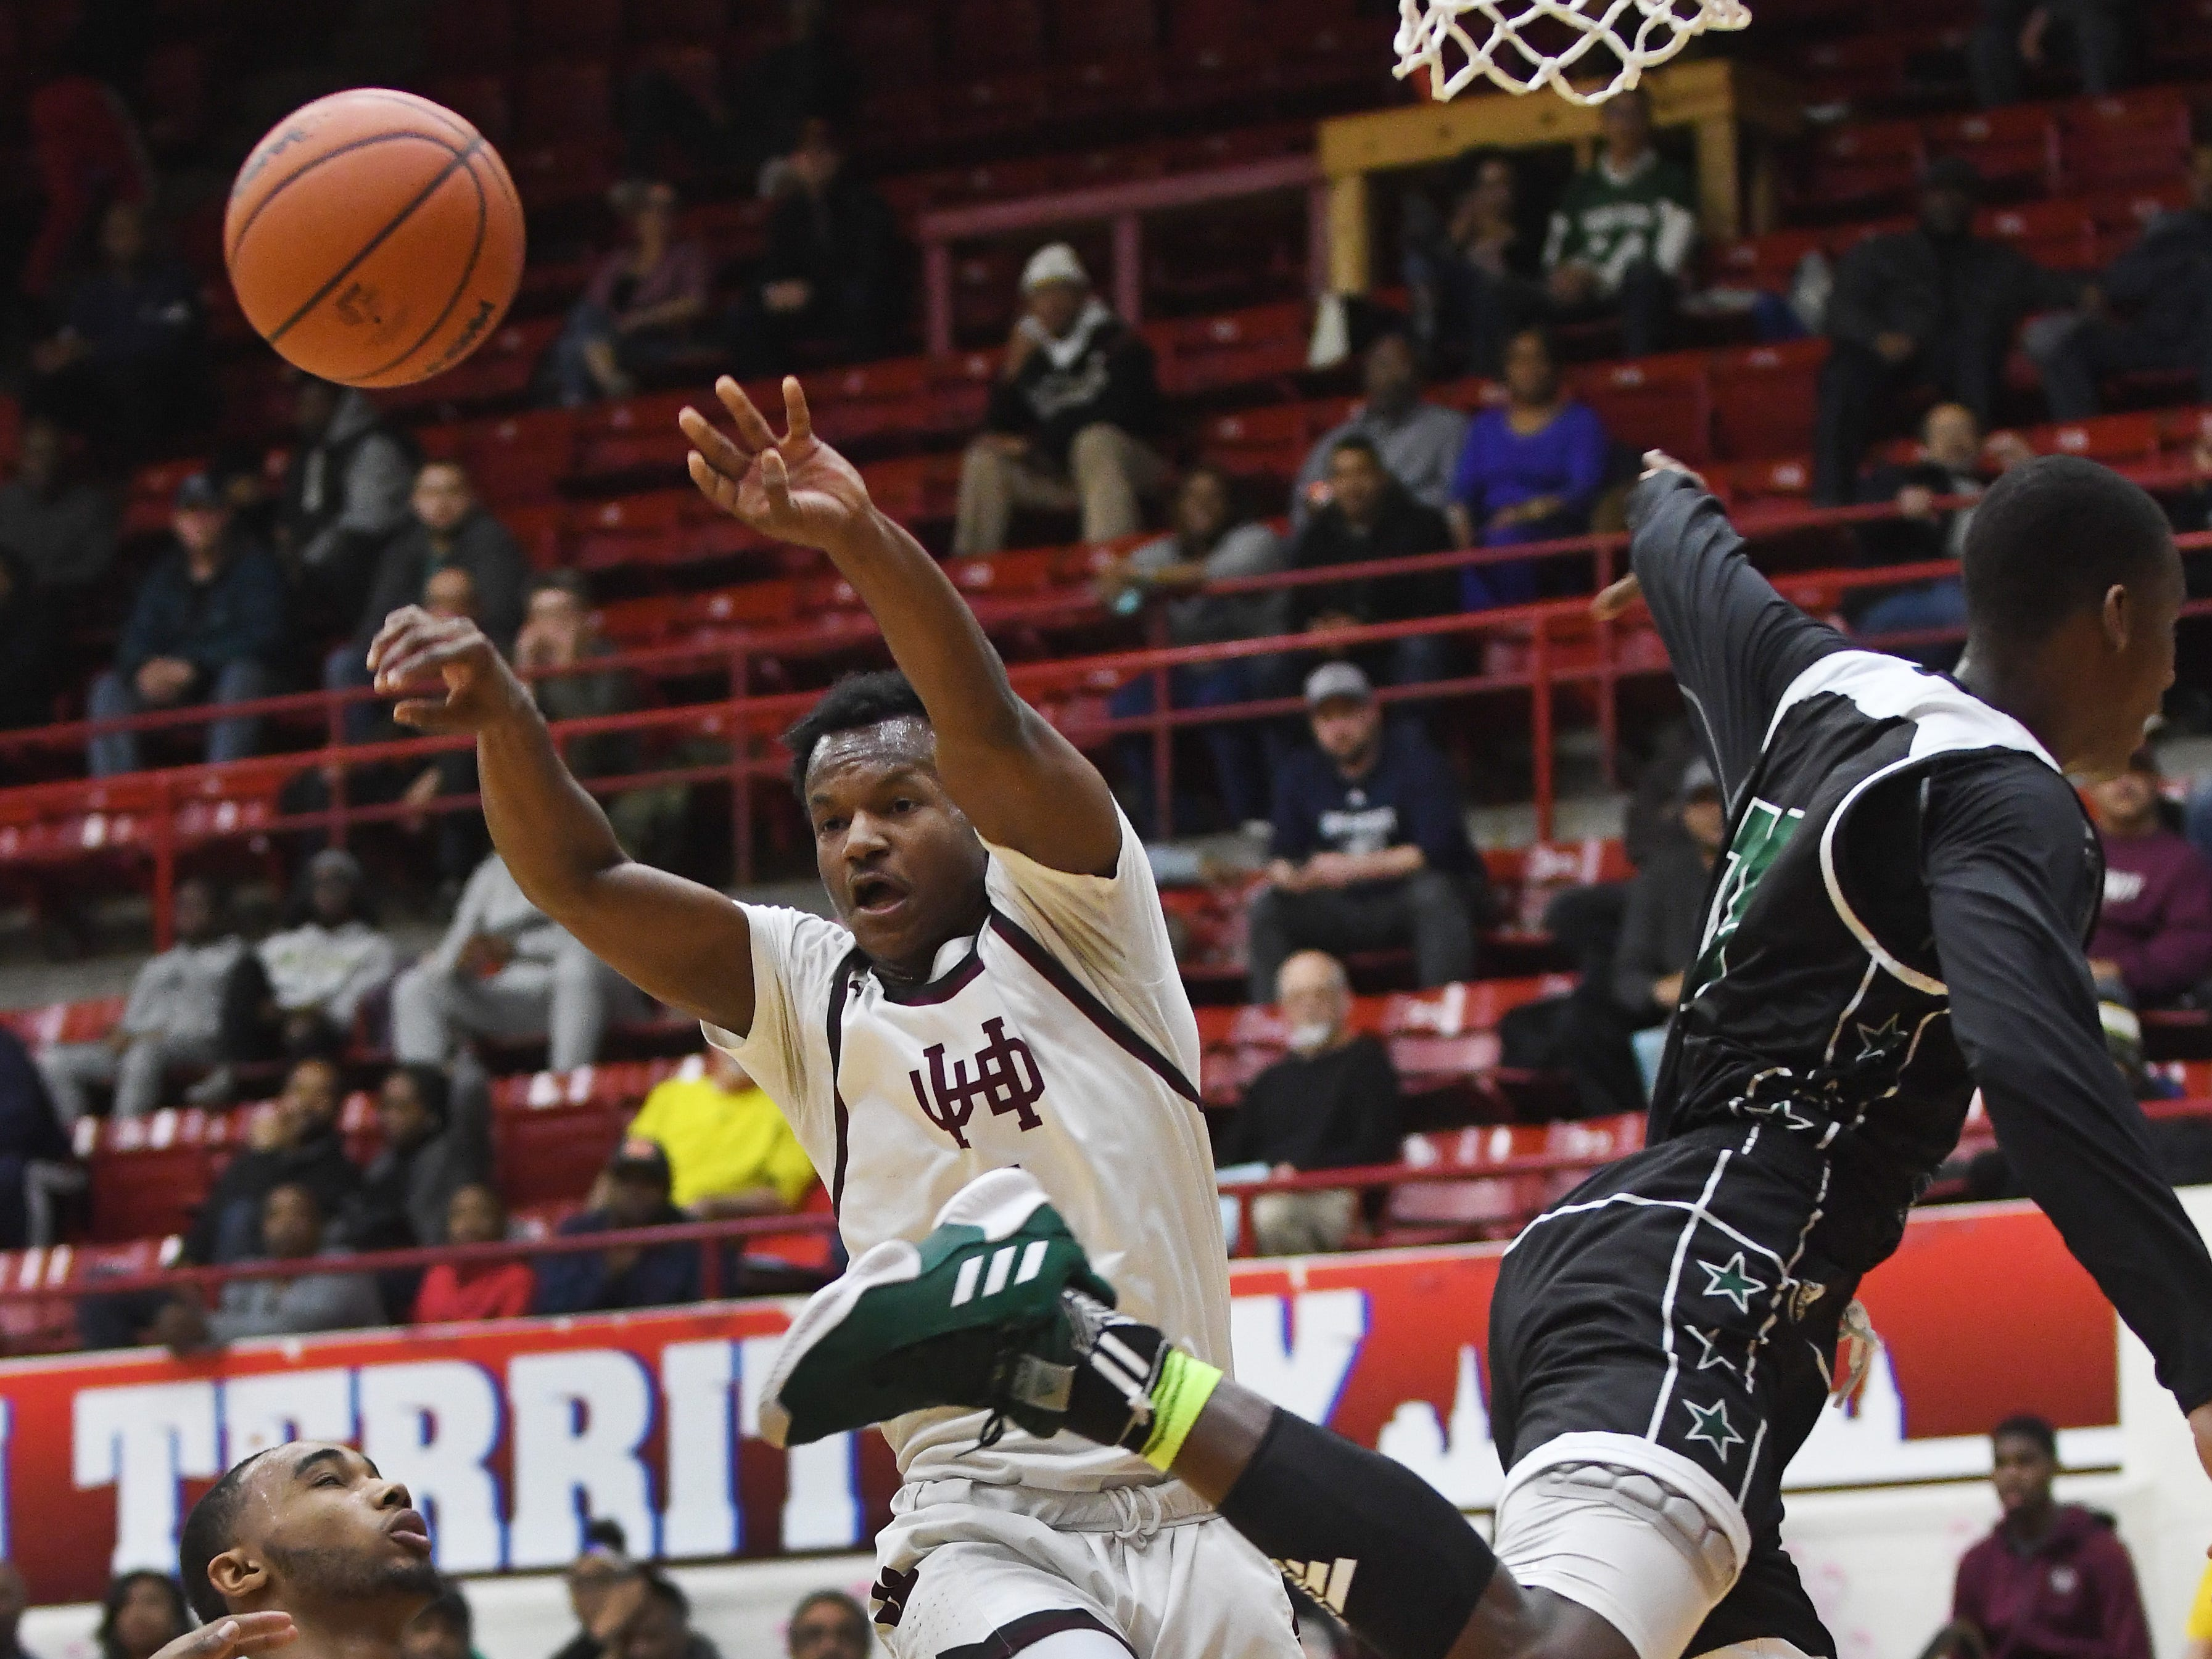 U of D Jesuit's Julian Dozier passes out of pressure from Cass Tech's Joshua Harris under the basket in the first half.